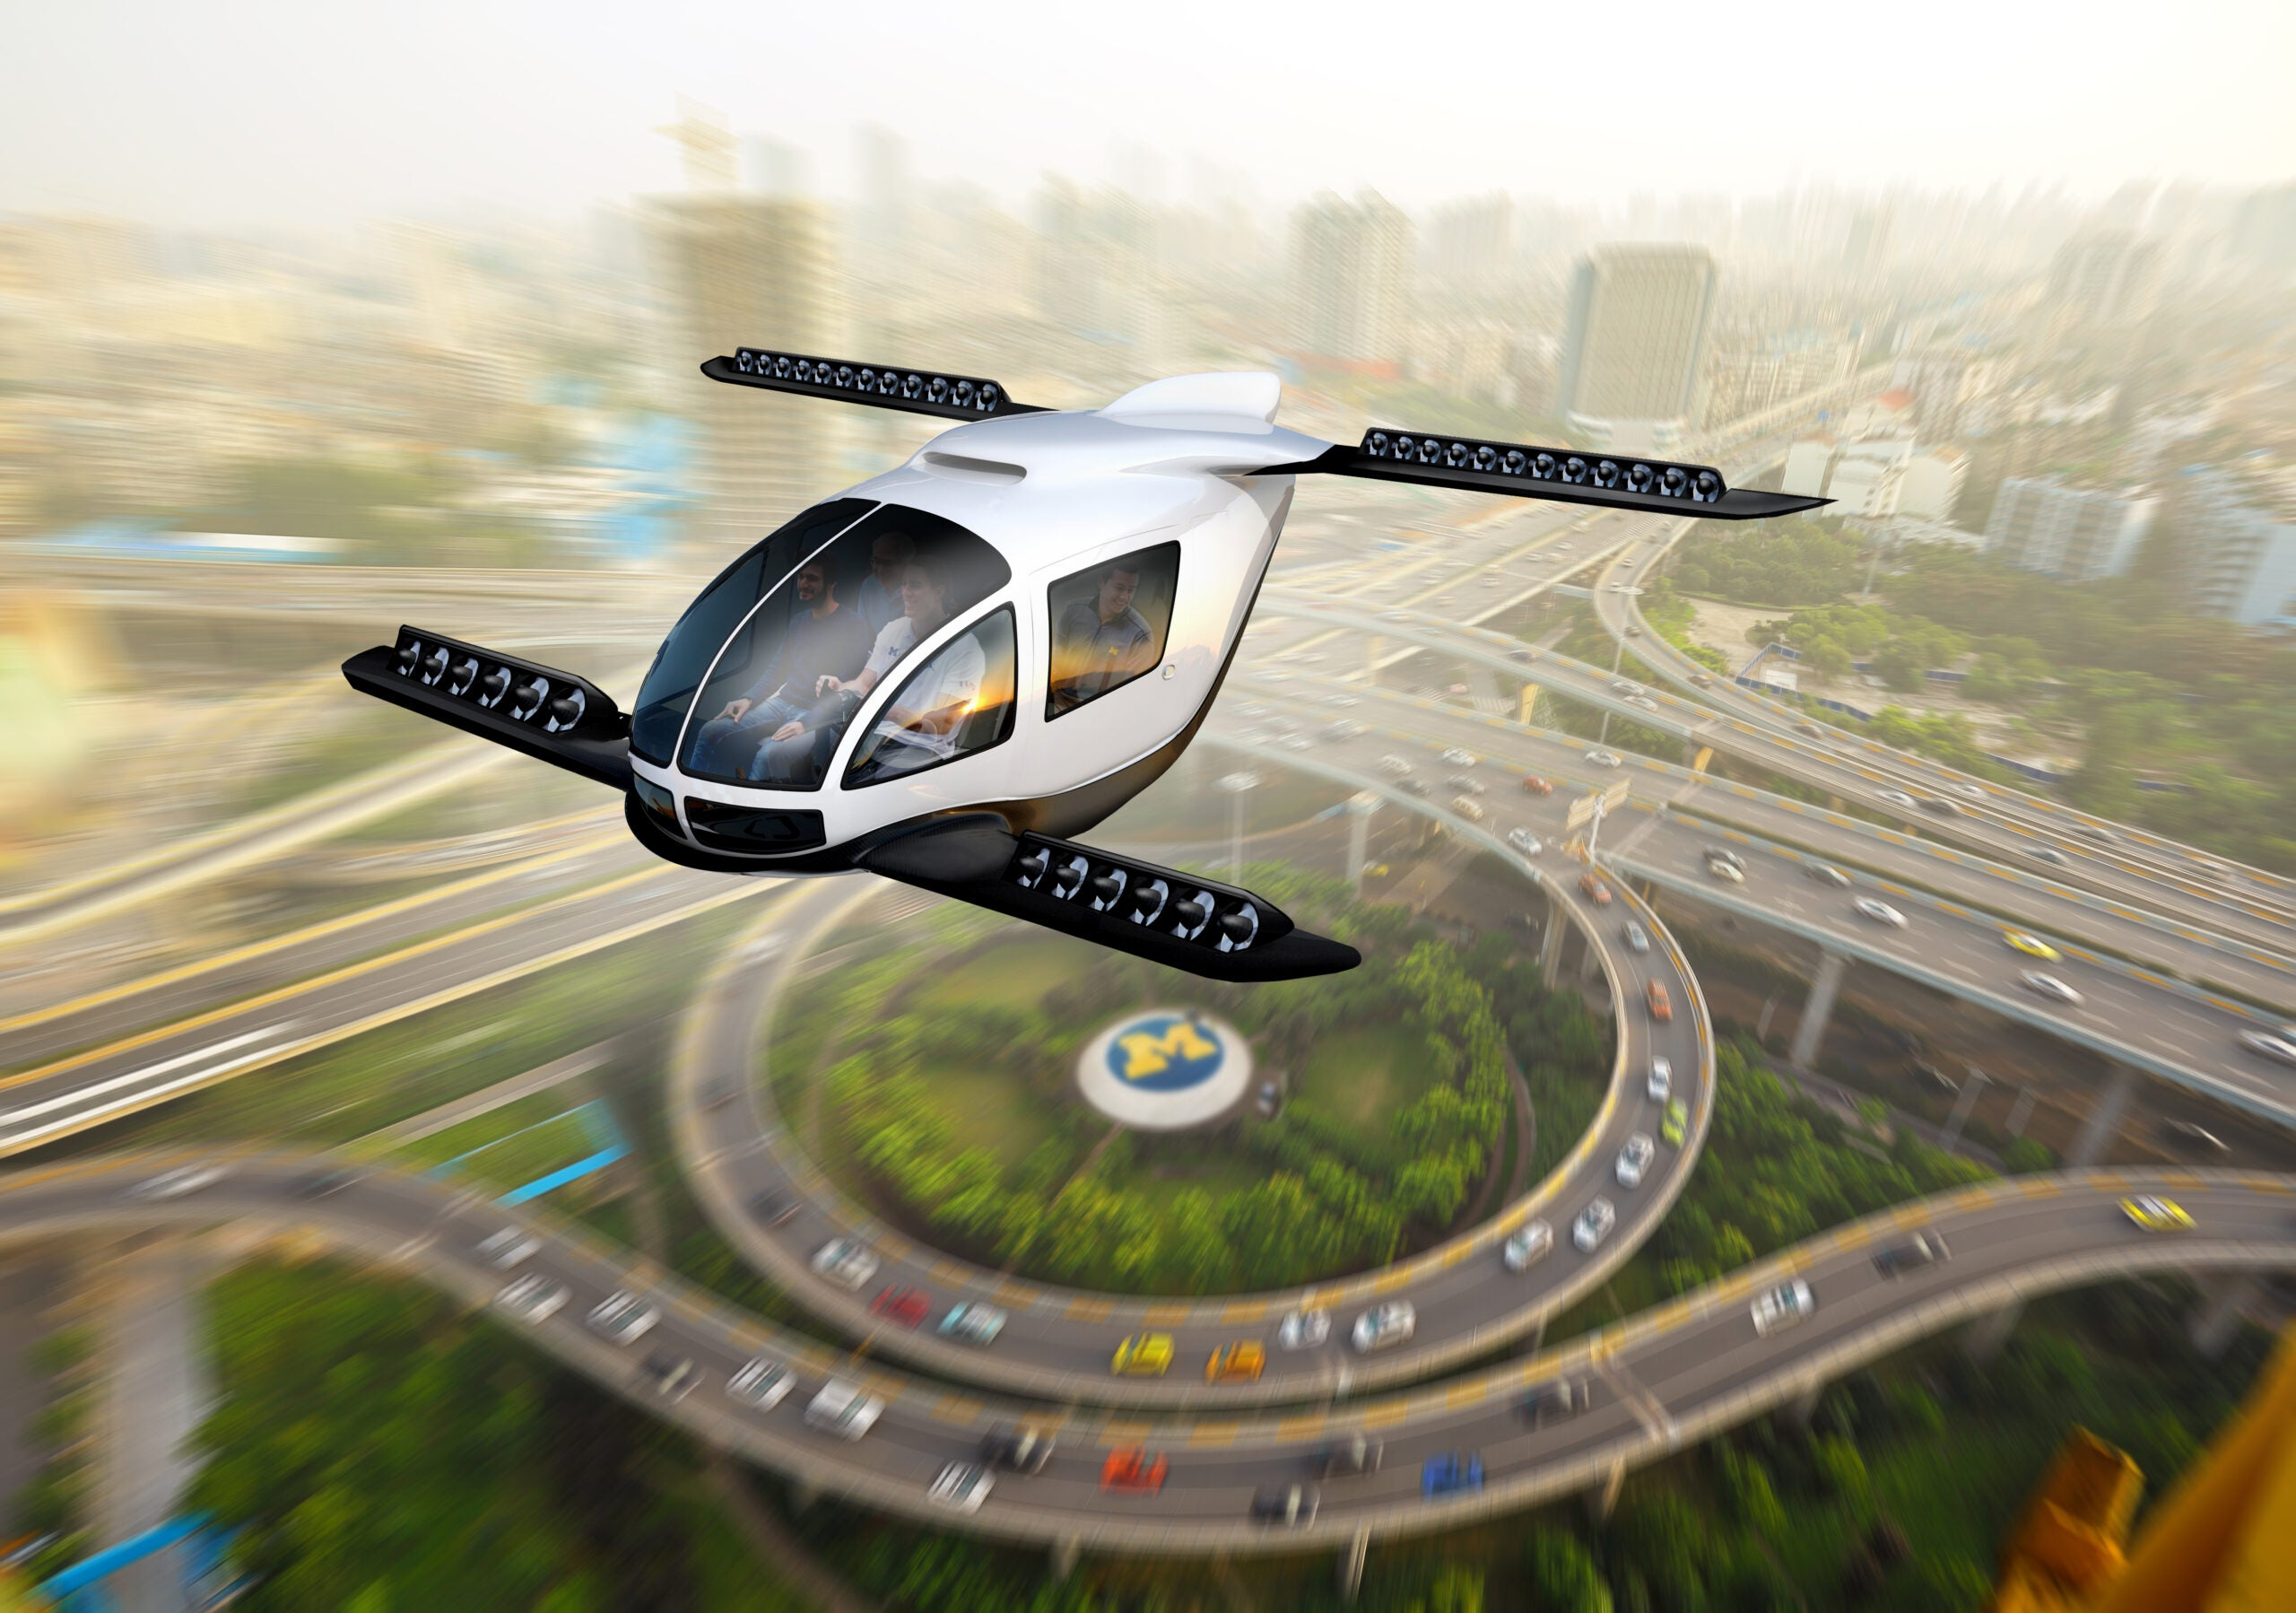 Flying cars will only be eco-friendly if we use them right